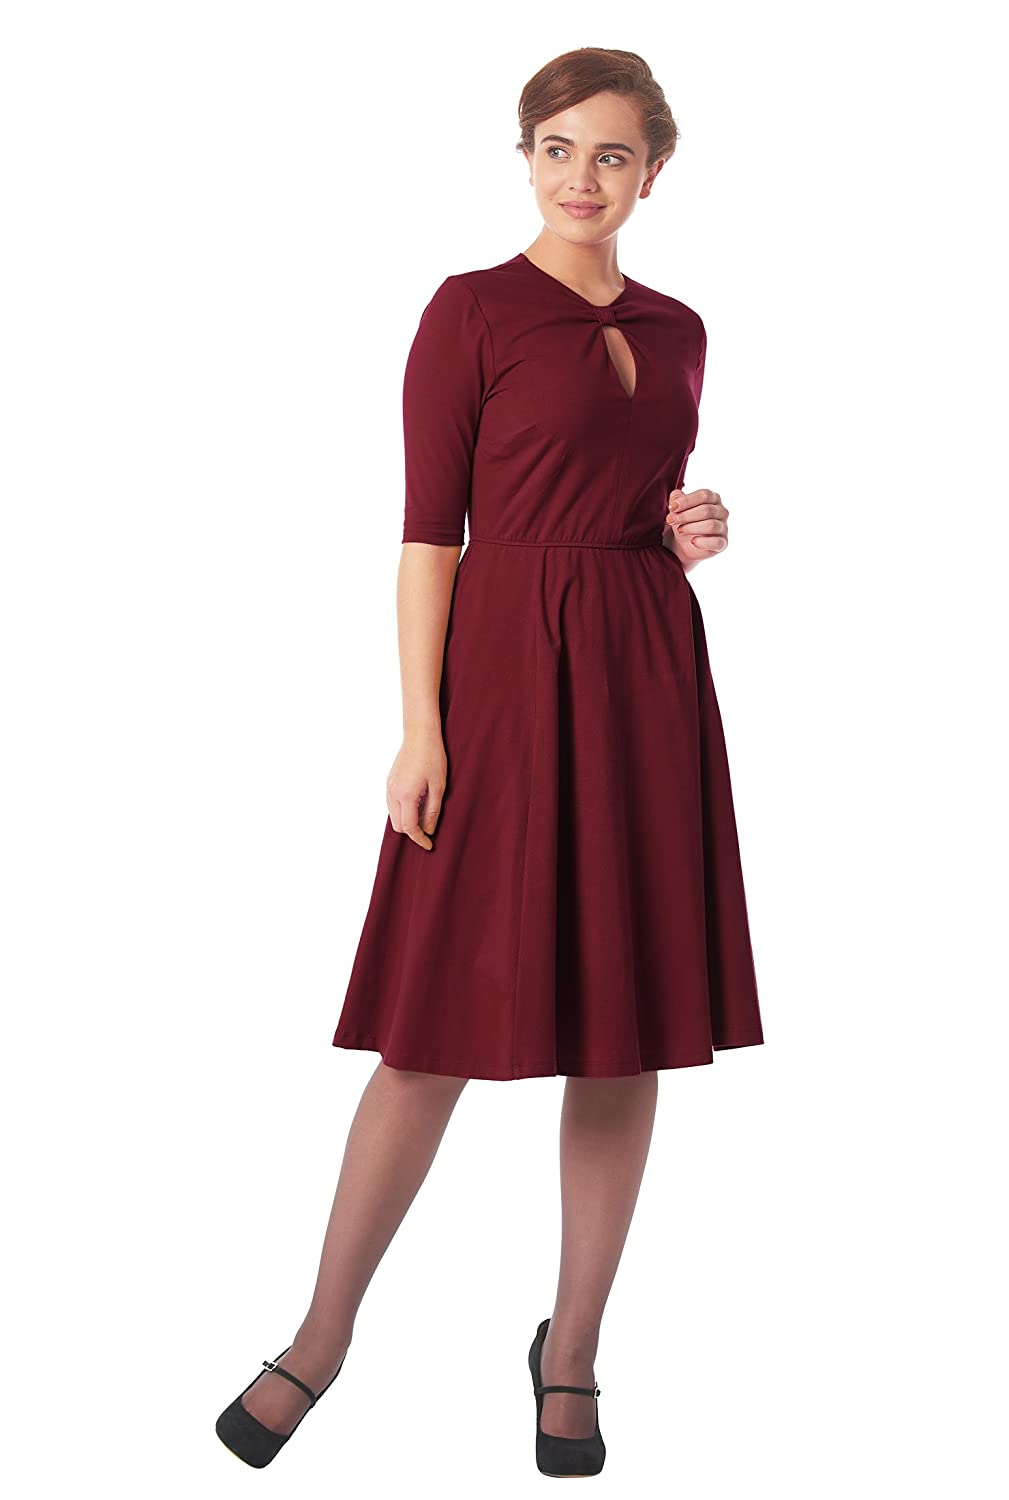 1940s Style Dresses and Clothing eShakti Womens Keyhole front cotton knit dress $56.95 AT vintagedancer.com